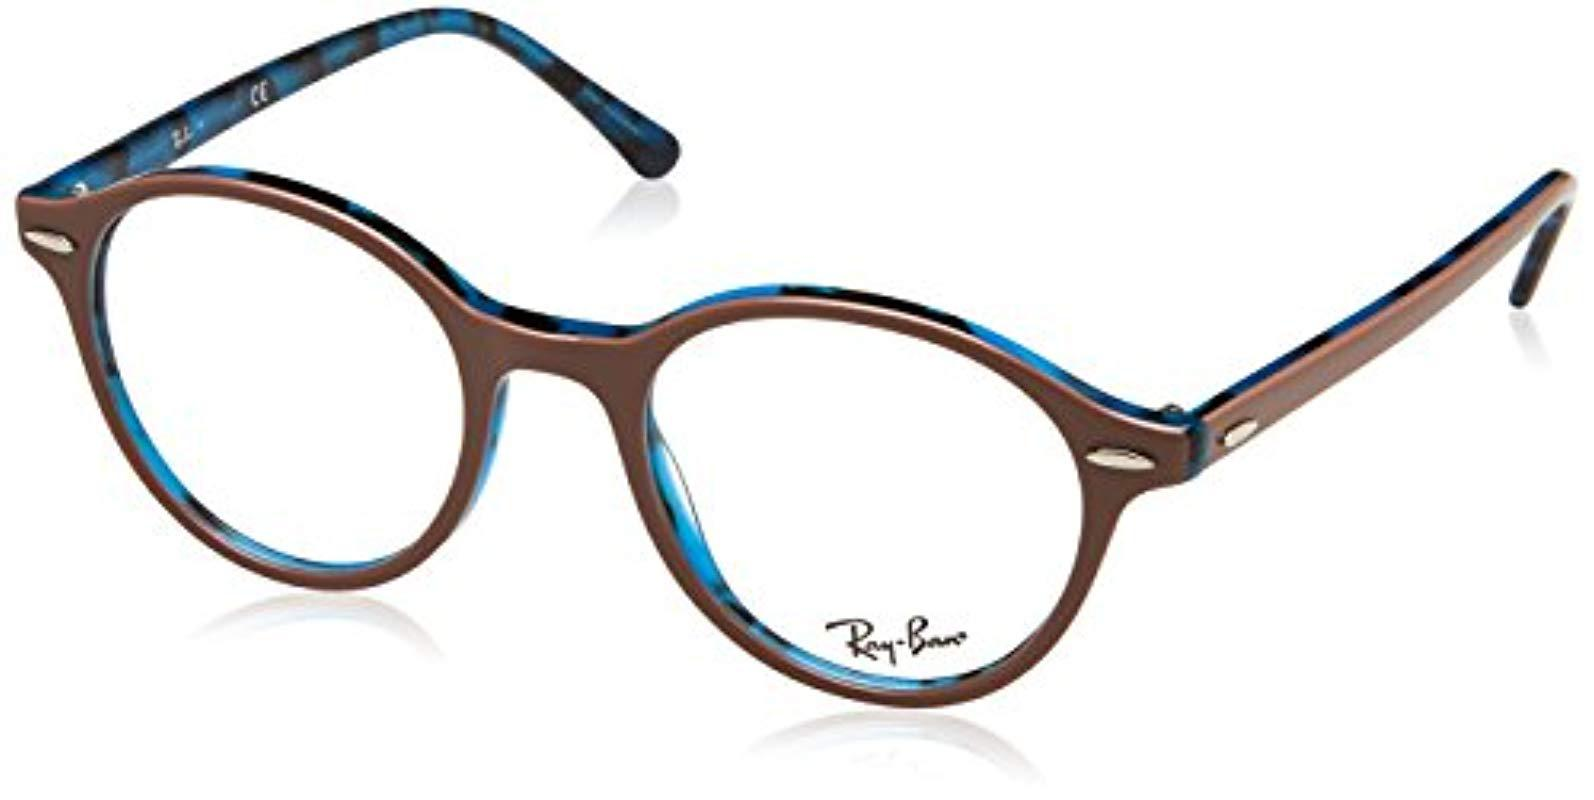 8d9c72beef Ray-Ban Rx7118 5715 50 Dean Glasses In Brown Havana Blue Rx7118 5715 ...